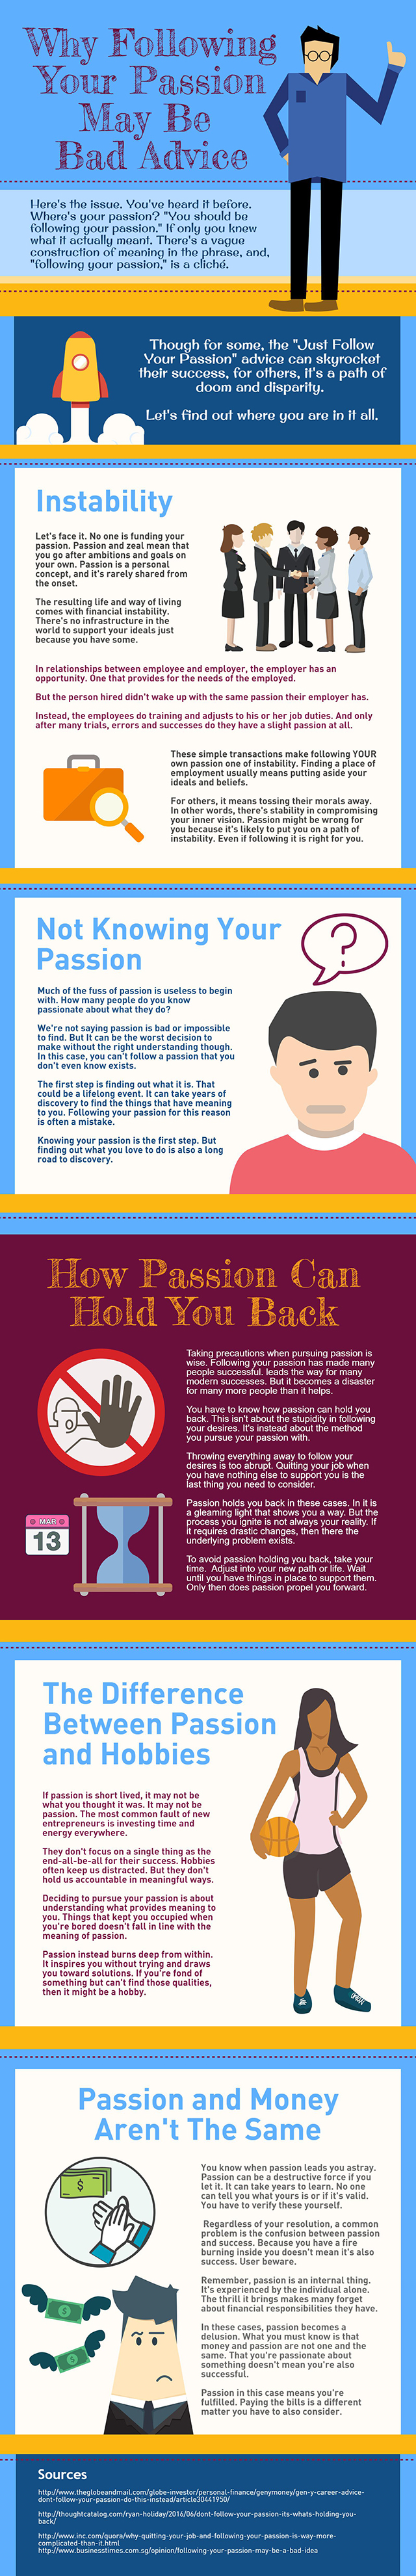 Why Following Your Passion May Be Bad Advice - Infographic